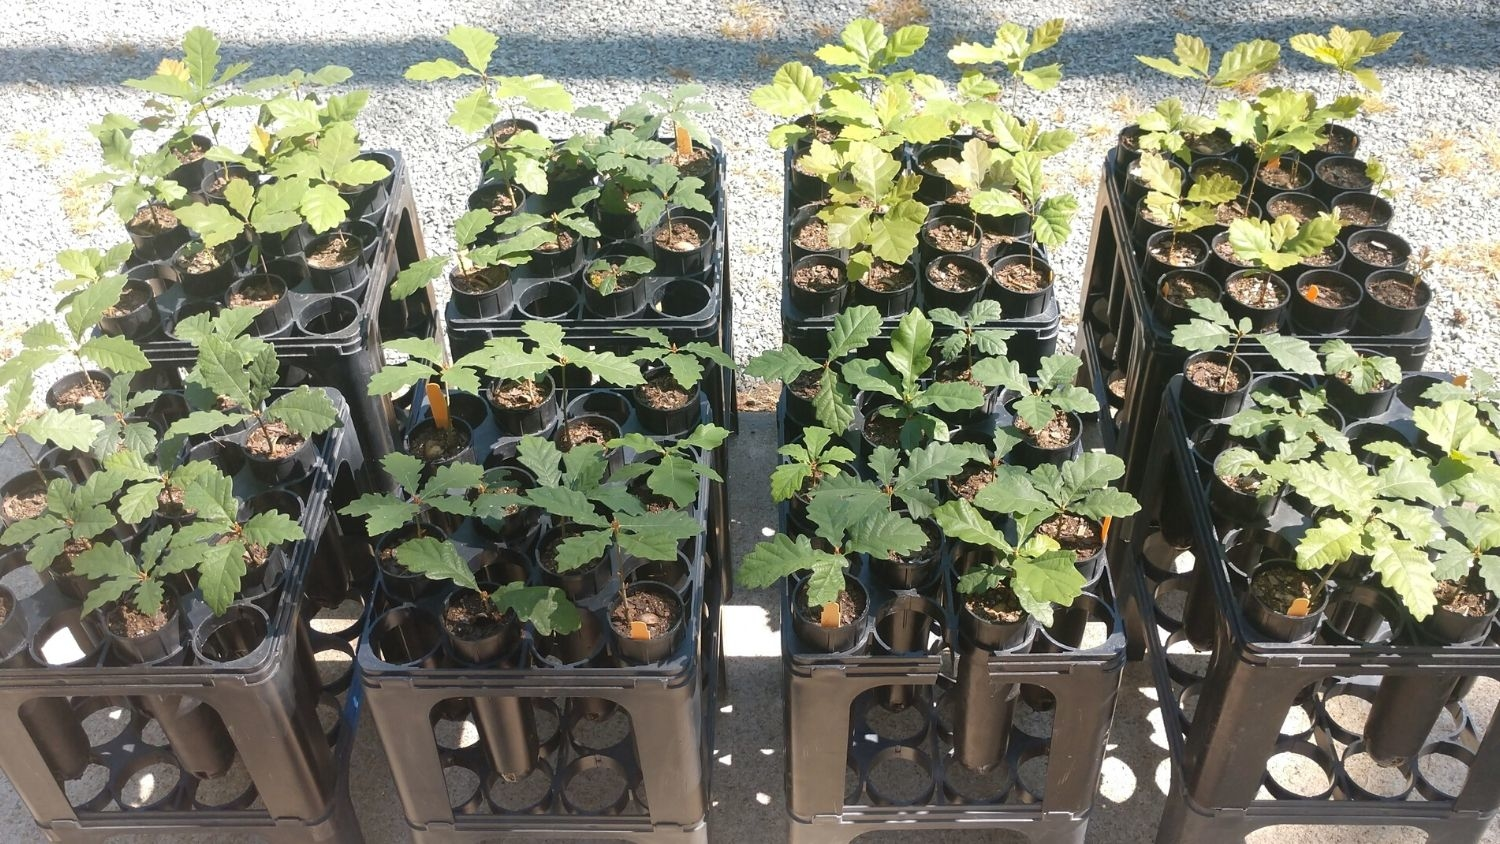 Young oak trees growing at NC State - NC State Tree Experts Grow Oaks to Honor Marines - Forestry and Environmental Resources NC State University